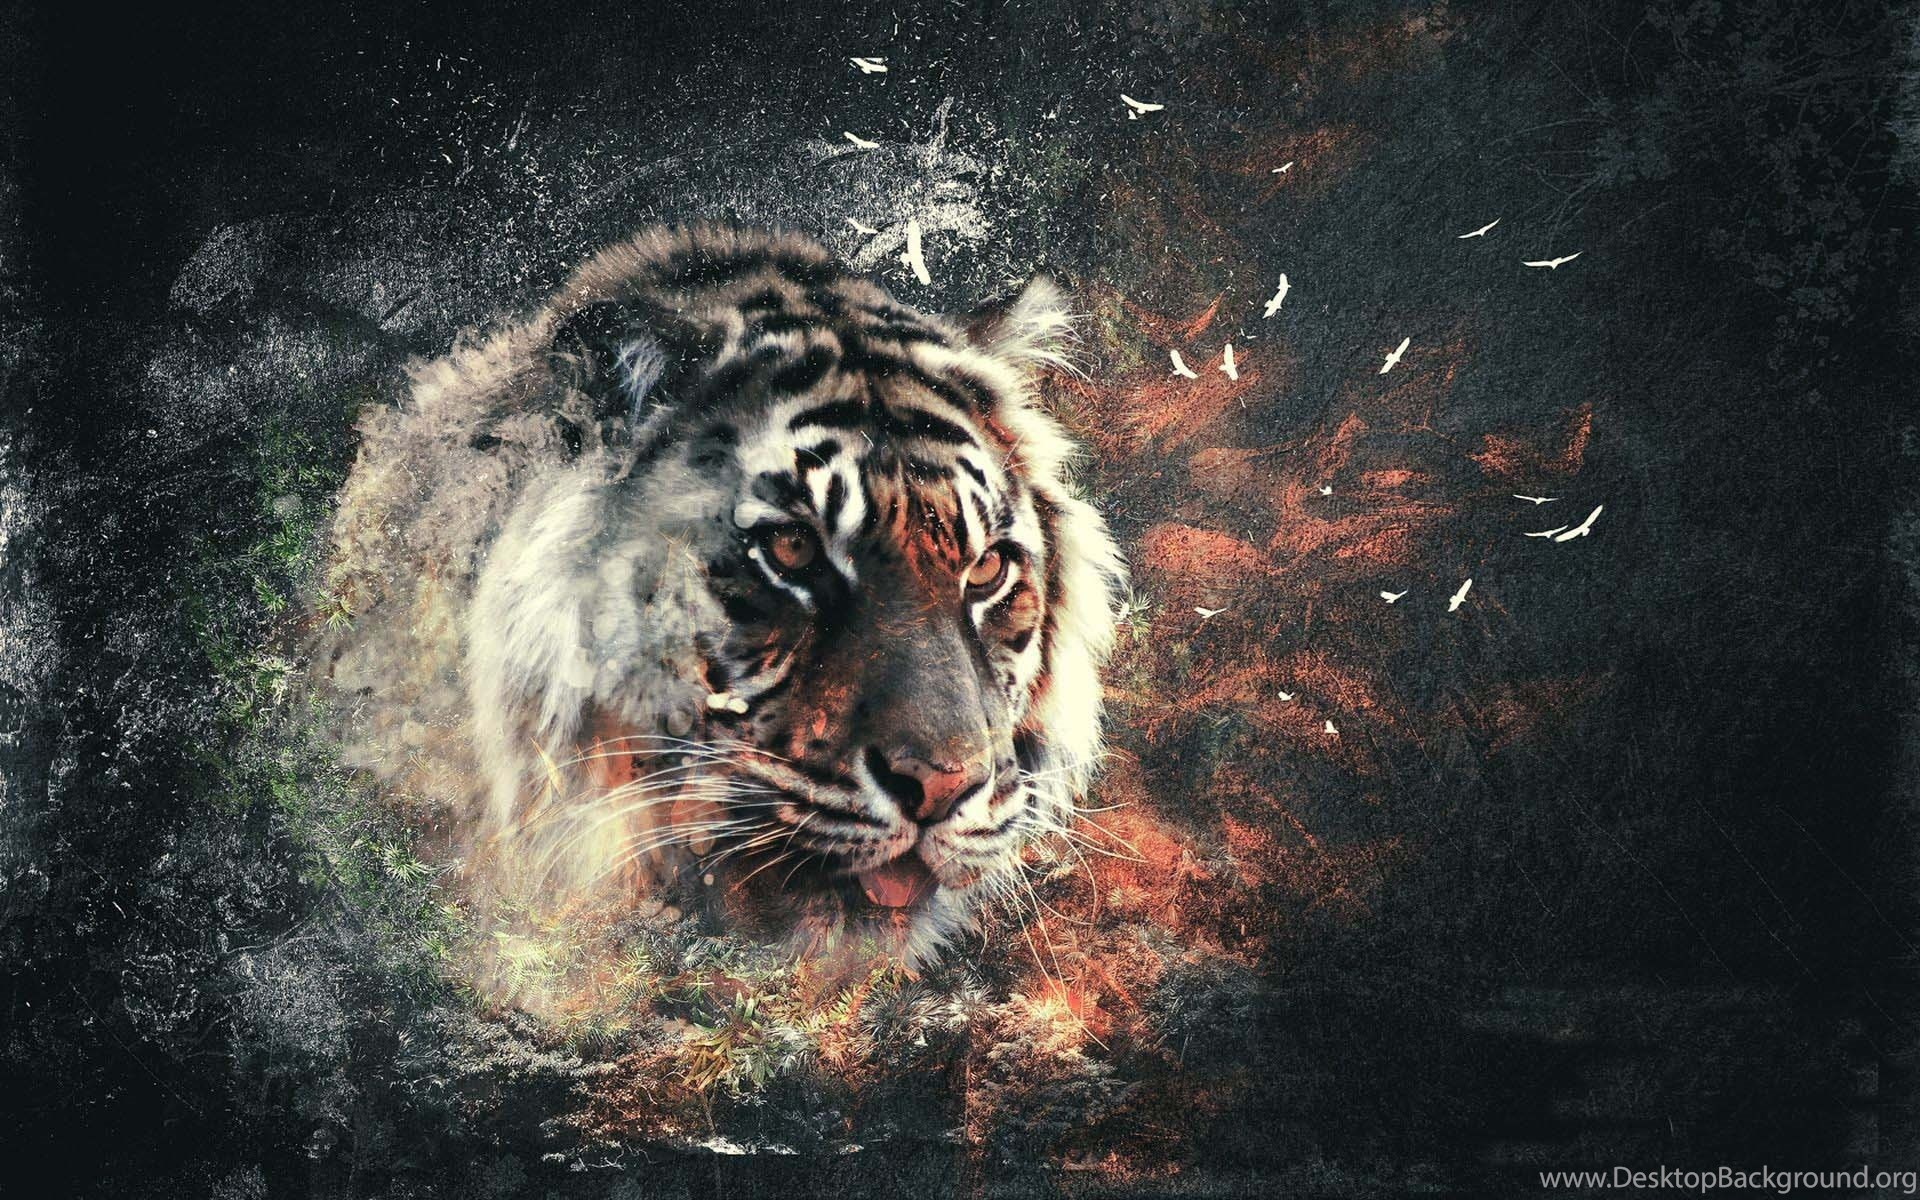 3D Tiger Wallpapers Wallpapers HD Wide Desktop Background